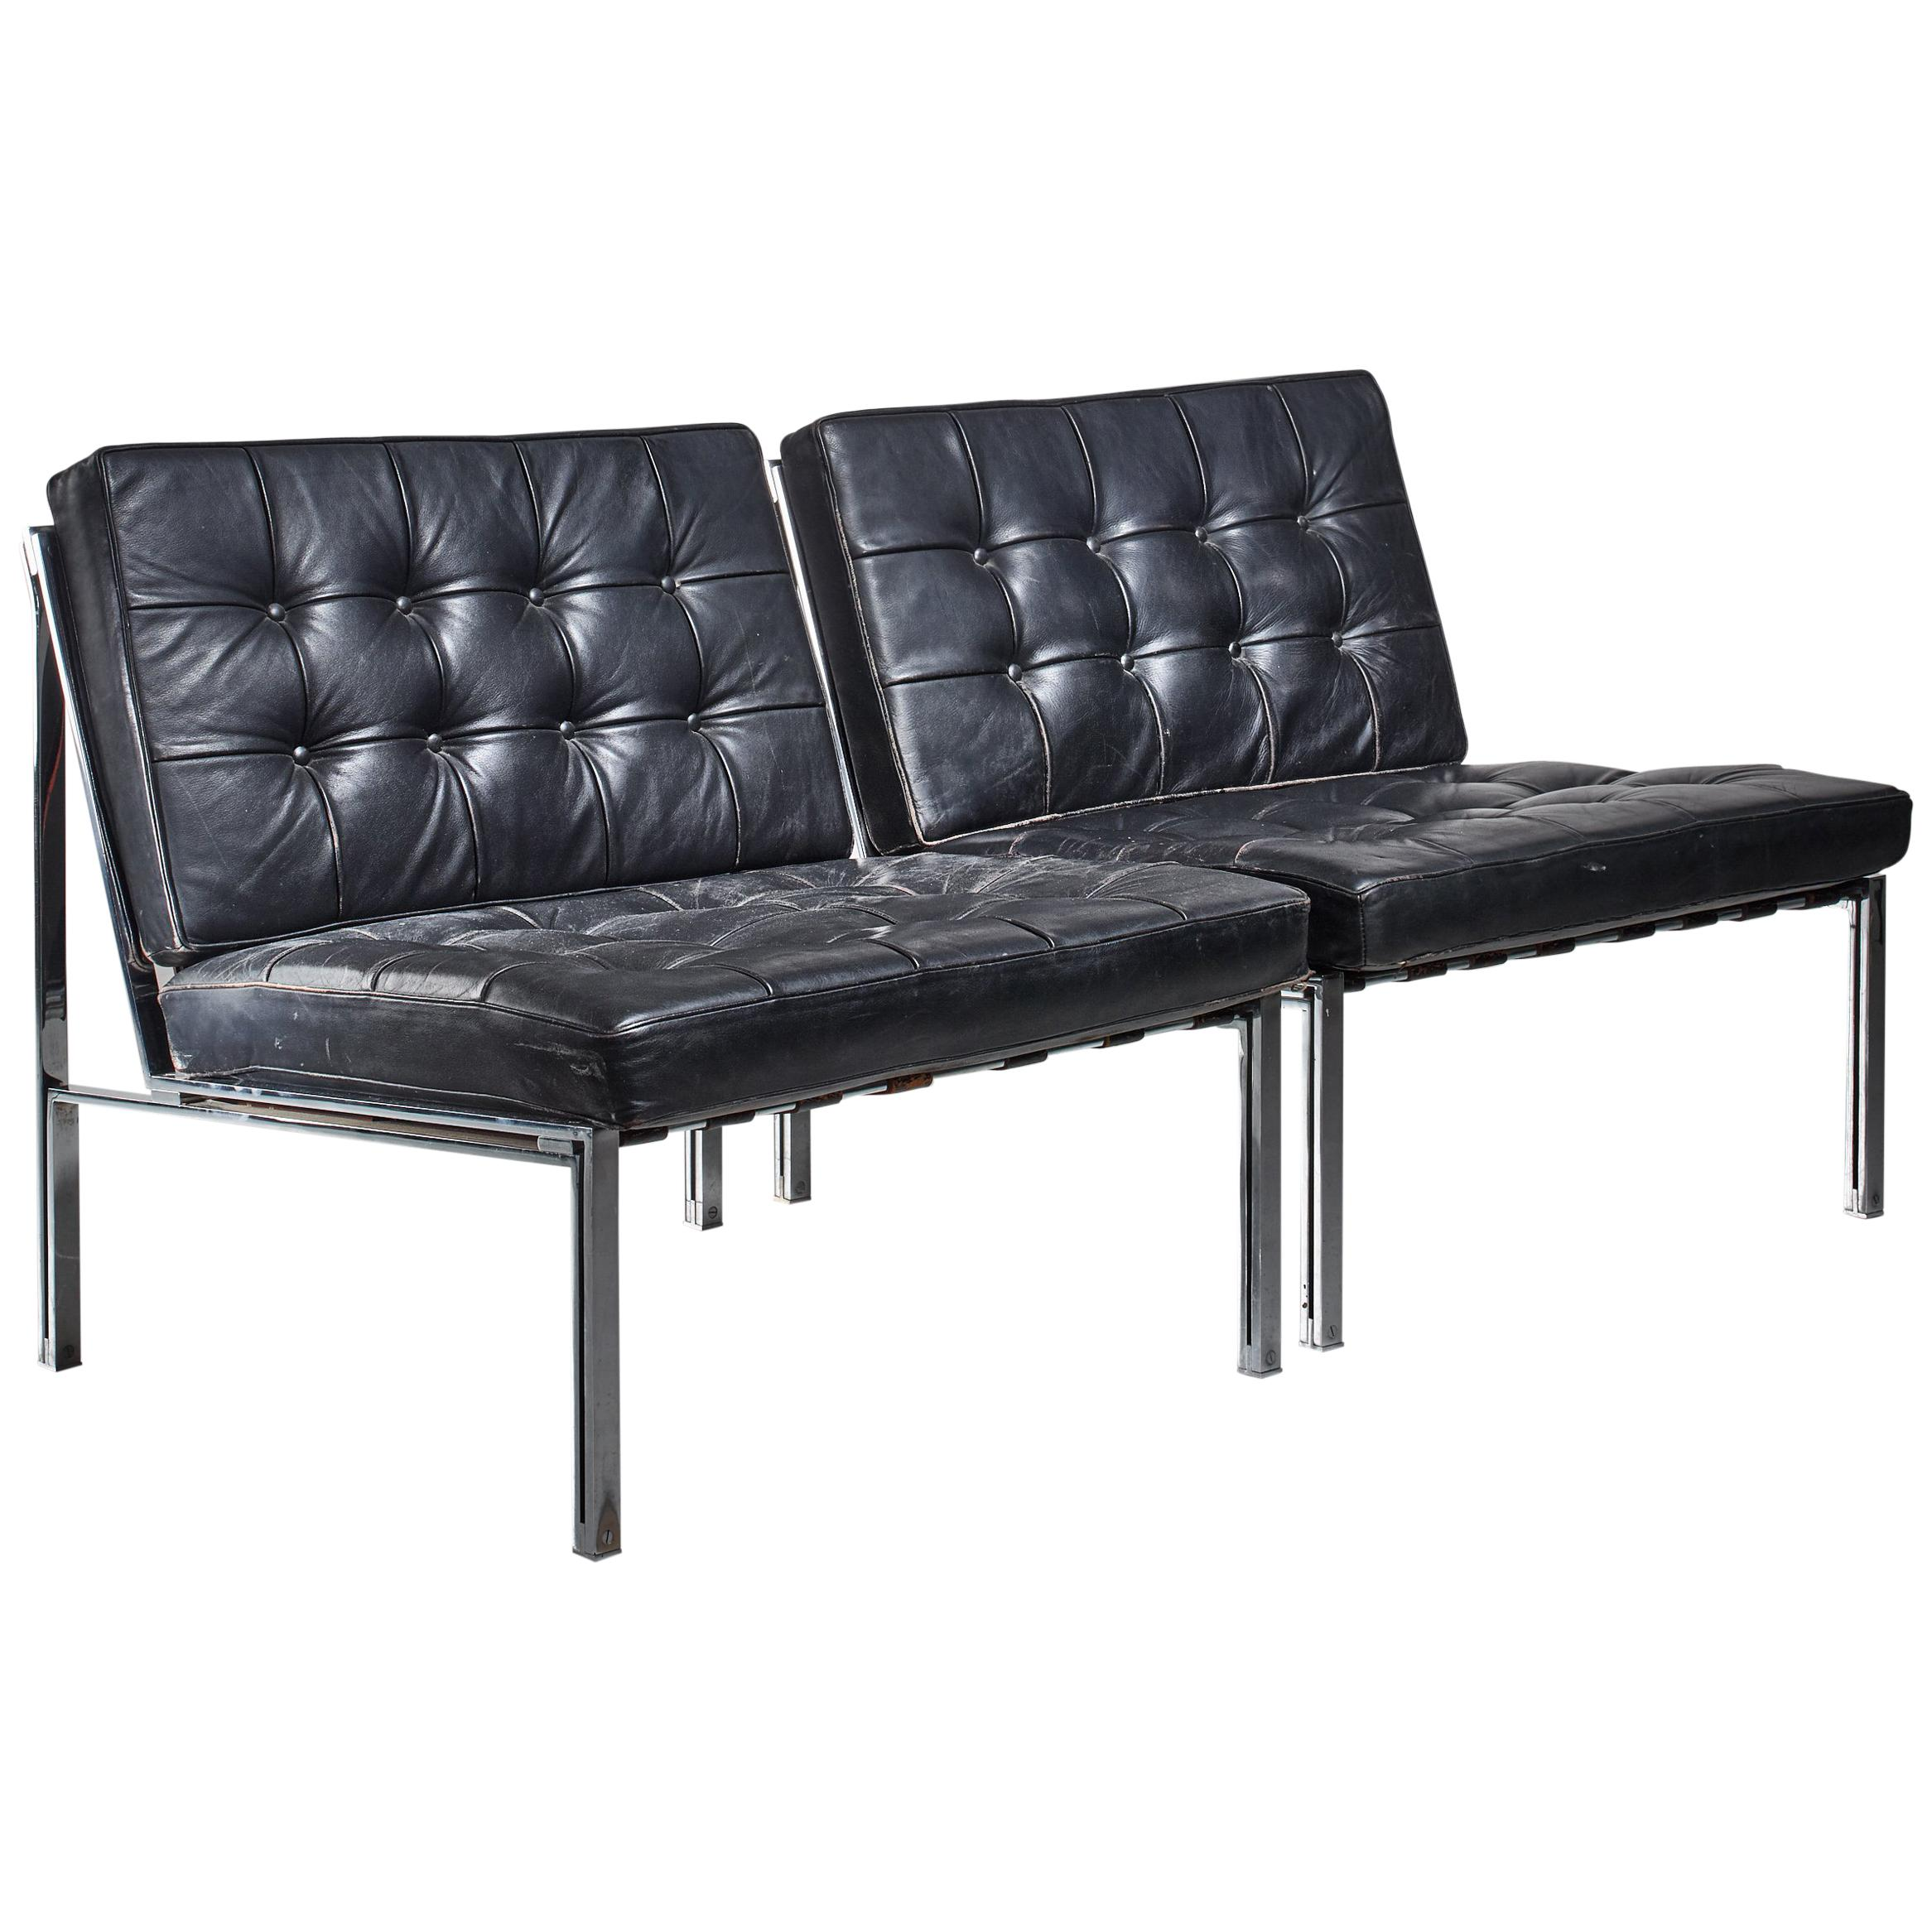 Pair of Kurt Thut Side Chairs with Black Leather Tufted Cushions